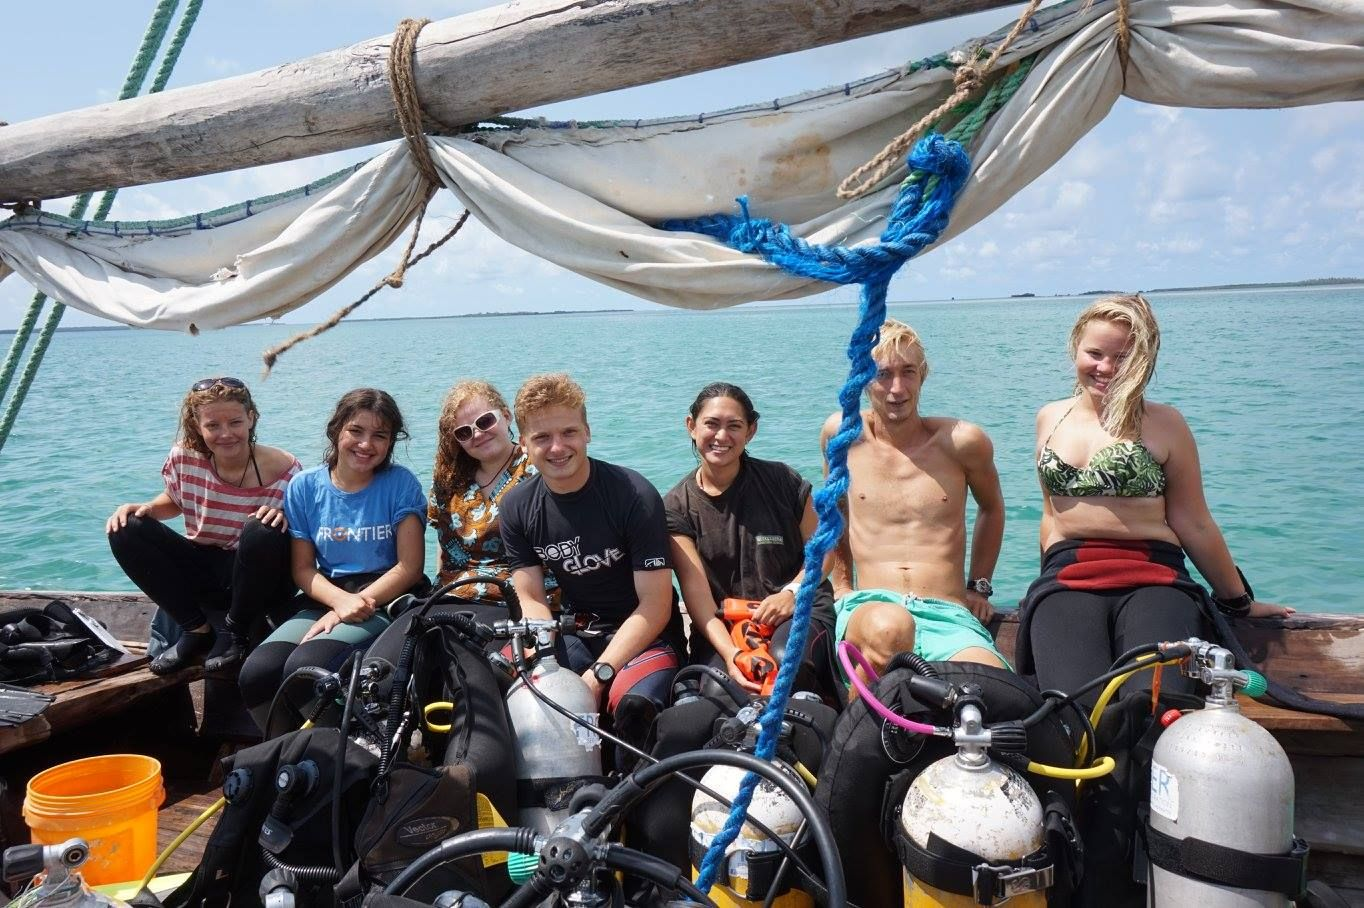 Interview: Nadia Frontier - Marine Conservation & Diving Volunteer frontier.ac.uk | frontiergap.com #interview #blog #diving #animals #biology #marine #marinelife #Tanzania #volunteer #frontiervolunteer